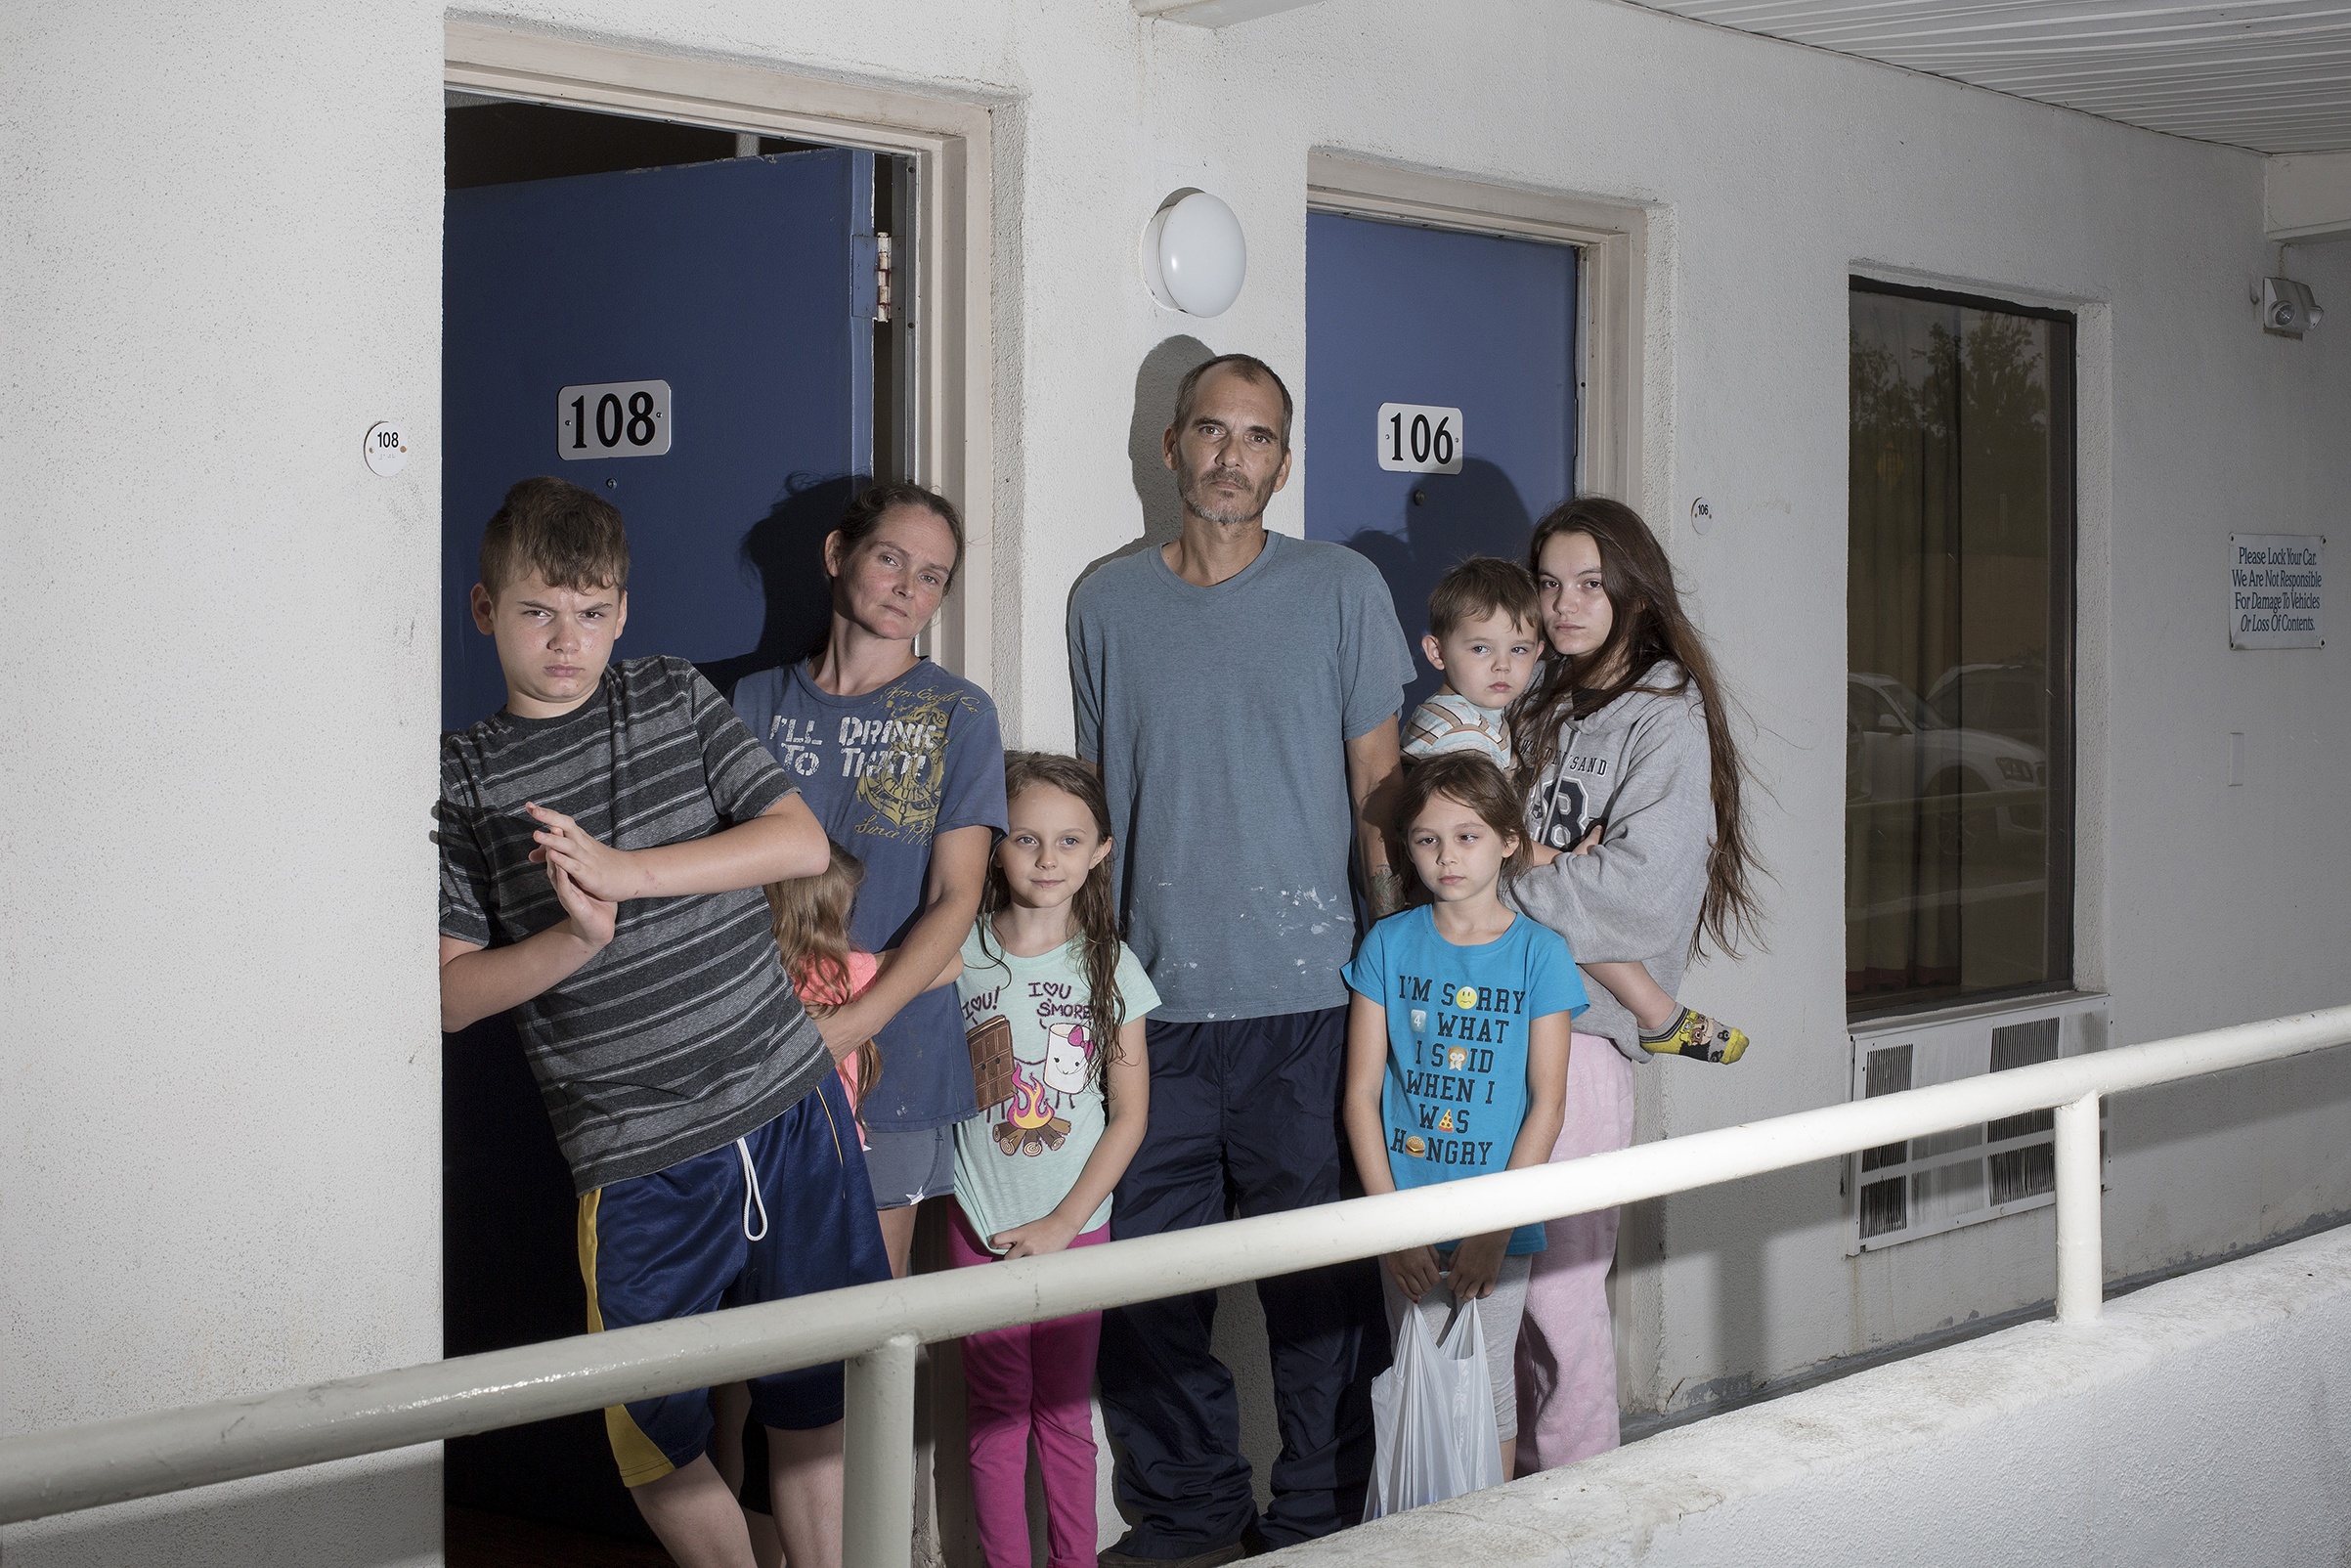 The Brown family from Jacksonville, N.C., poses for a portrait at a motel after fleeing Hurricane Florence in Cary, N.C. on Sept. 14.